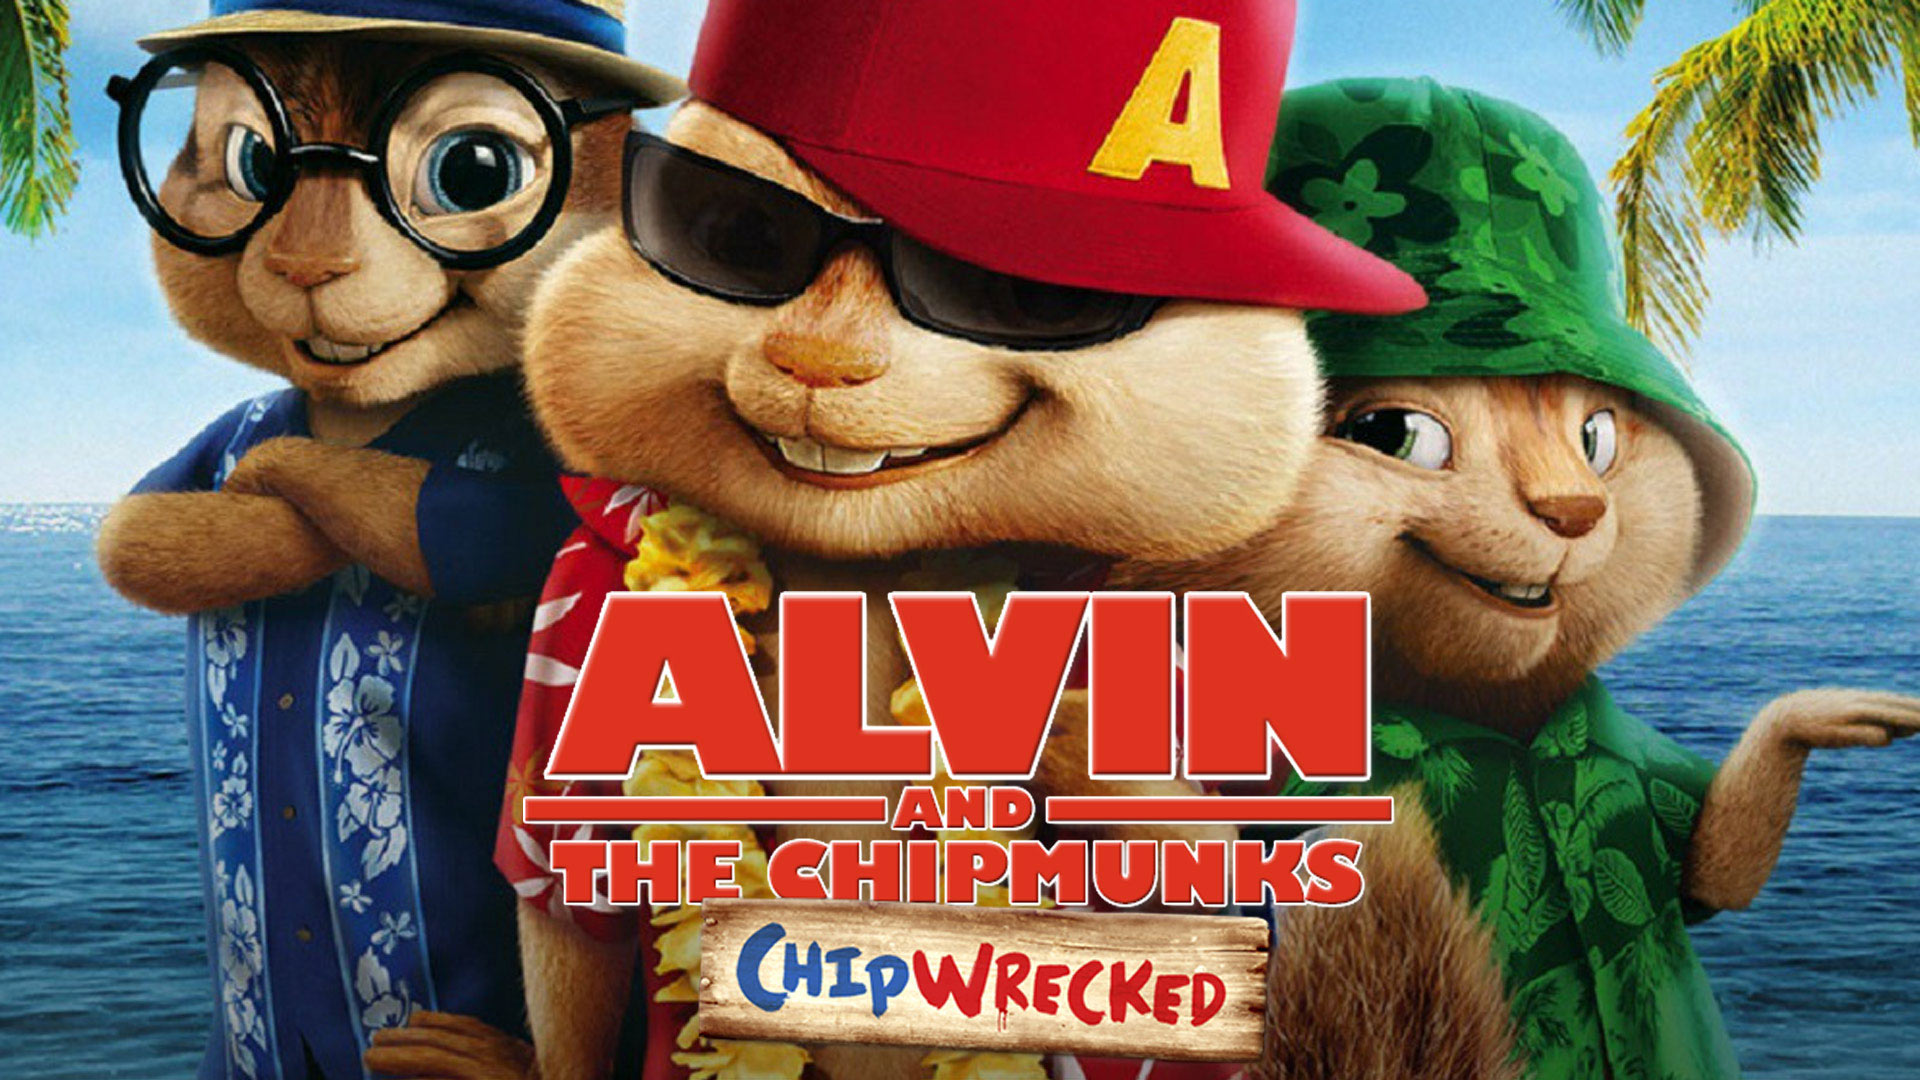 Alvin and the Chipmunks: Chipwrecked (字幕版)